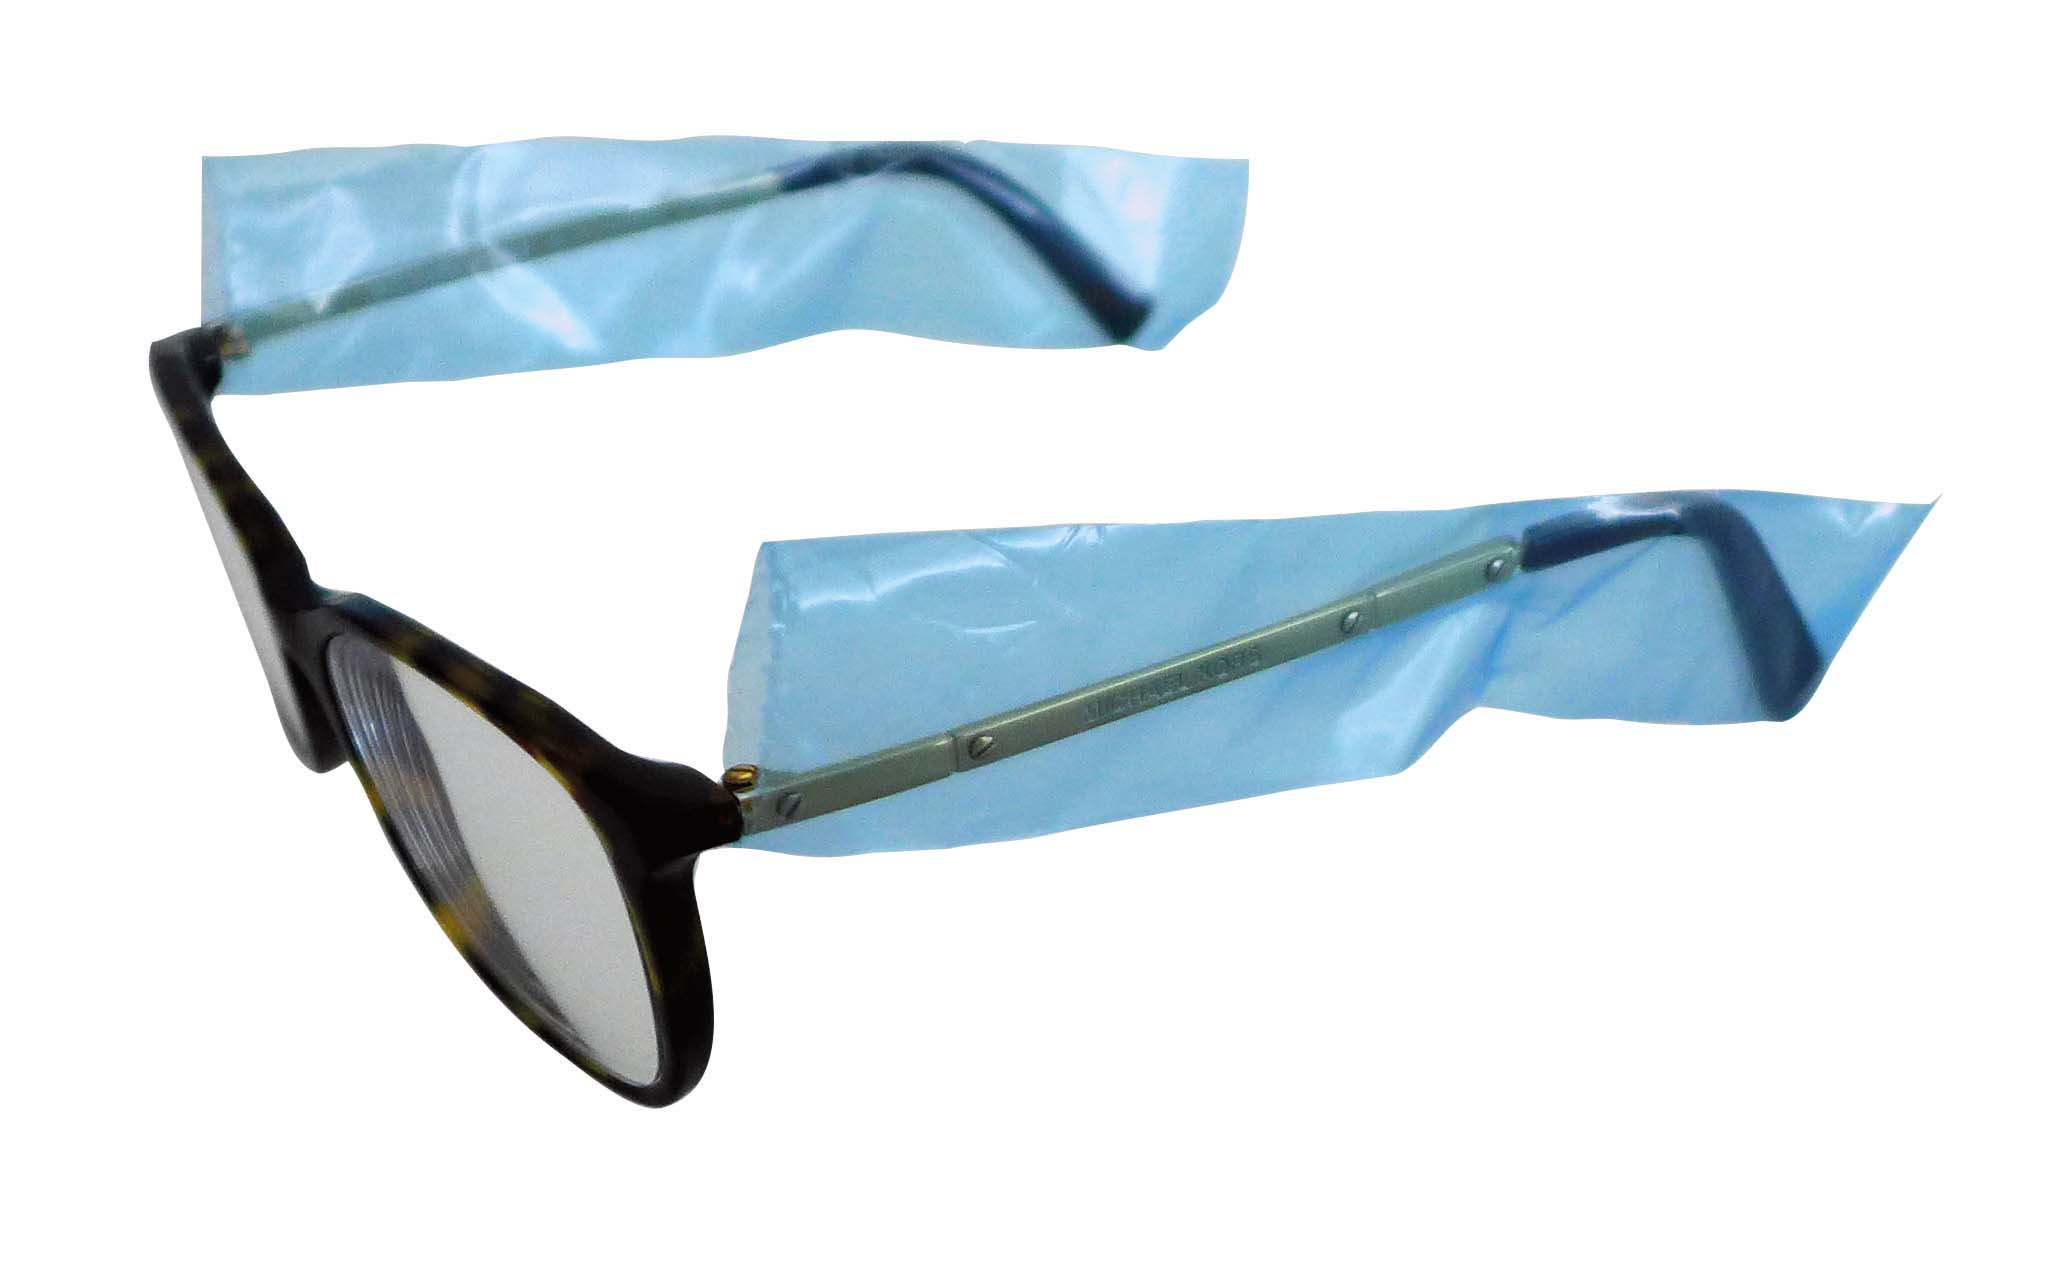 Temple-guards-for-eyeglasses--Cover-